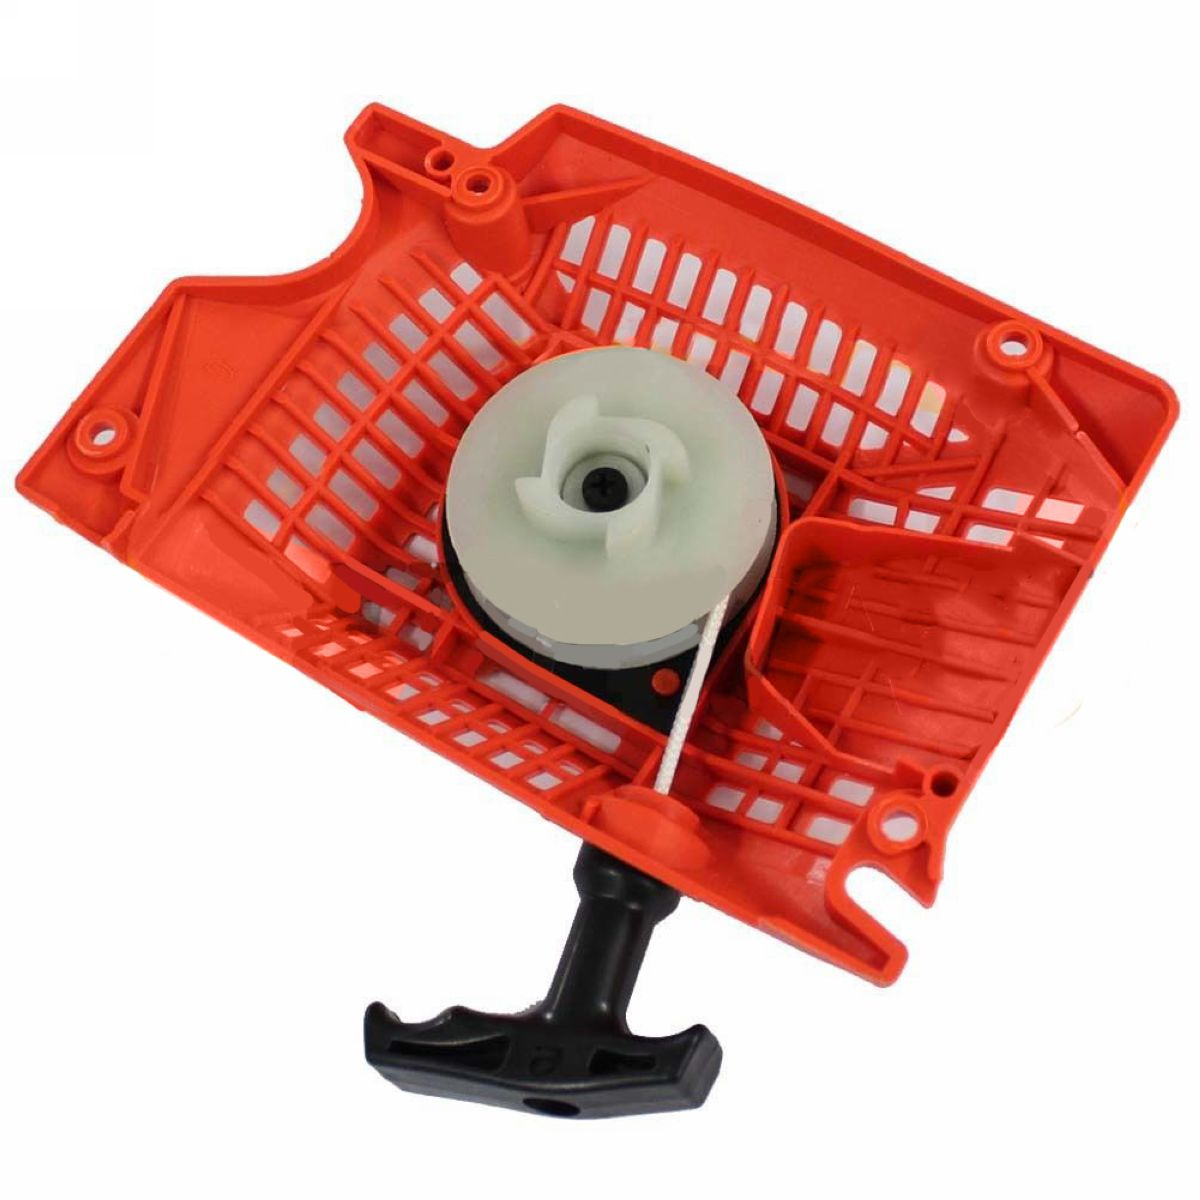 Durable Recoil Pull Starter For Chainsaw Mayitr Single Recoil Pull Starter Assembly New recoil starter assembly fits partner 350 351 p350 pa350 p351 pa351 chainsaw pull start assy replace poulan part